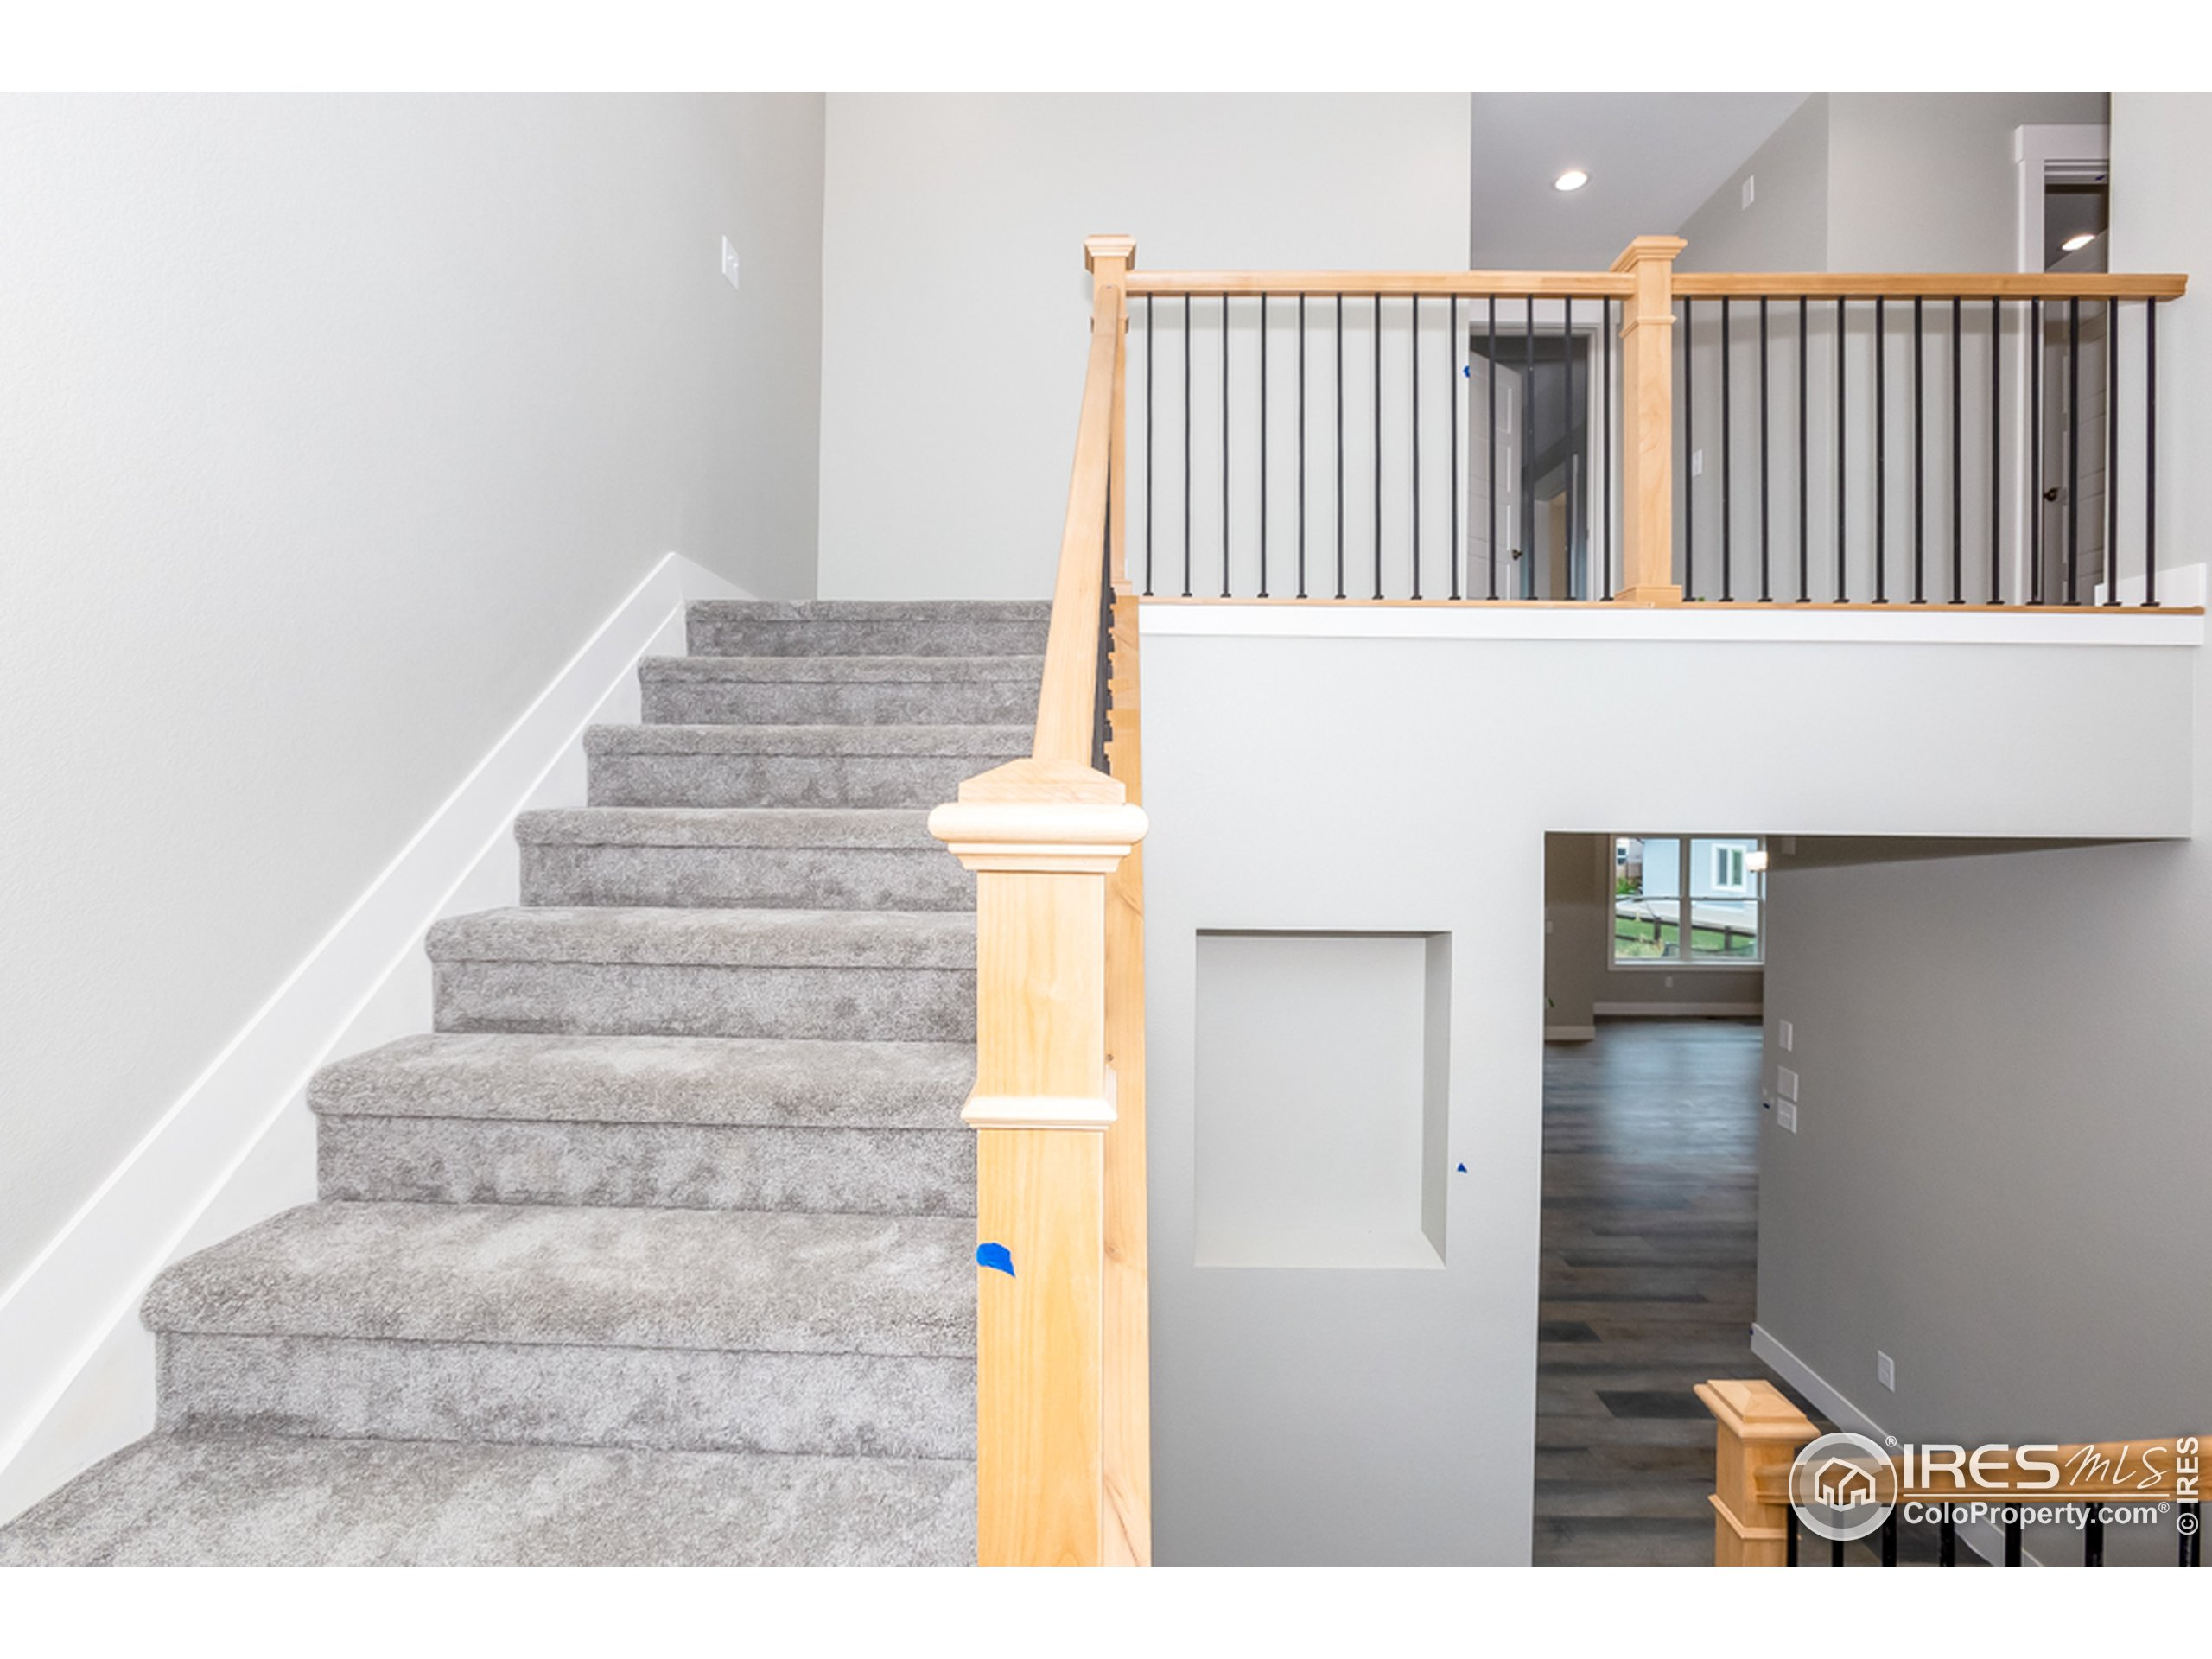 Stylish wrought iron bannister leads to the upper floor